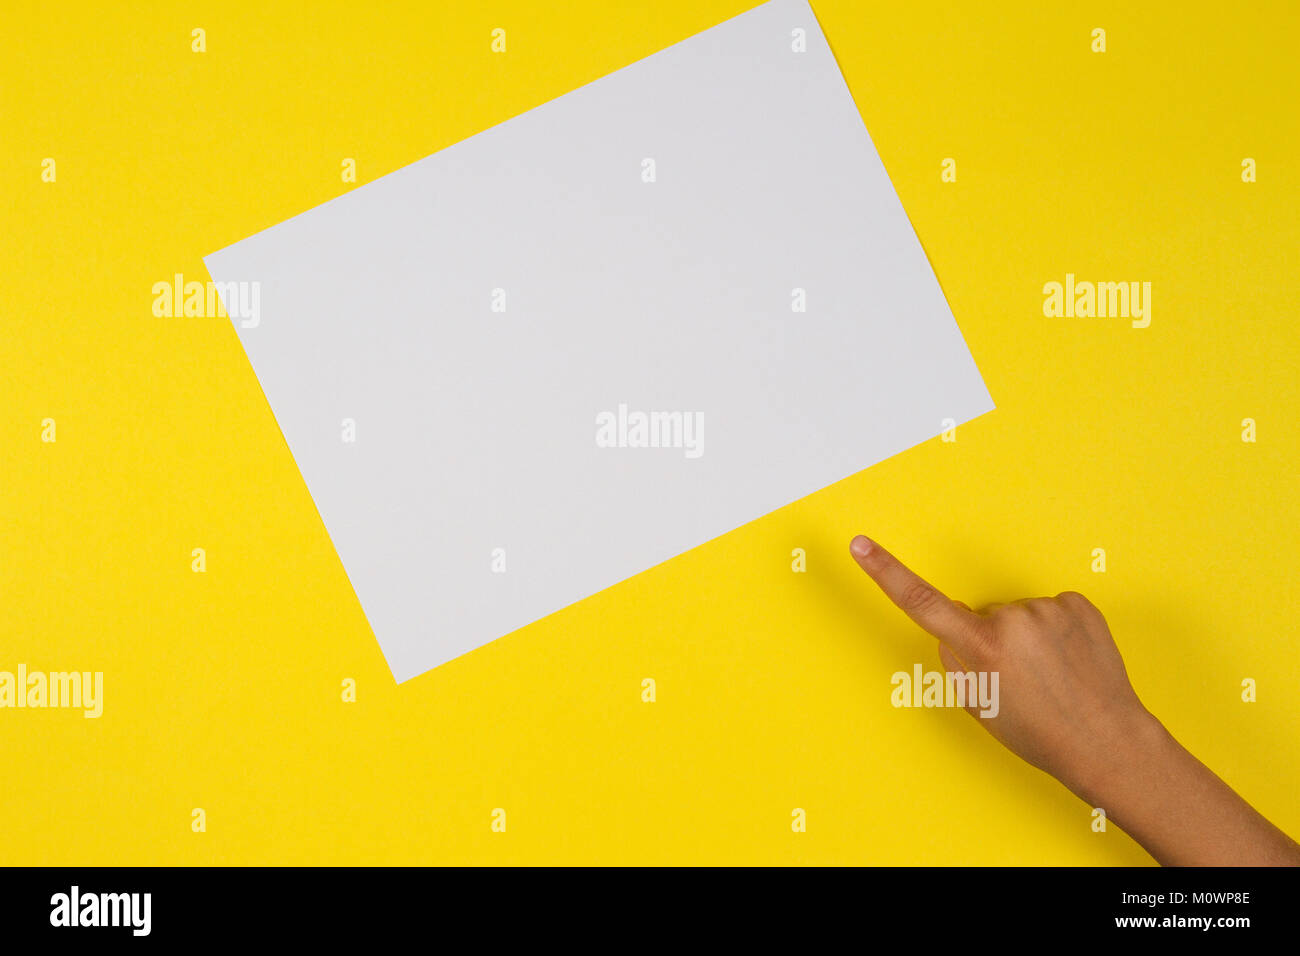 Kids hand finger pointing to white blank paper card on yellow background - Stock Image